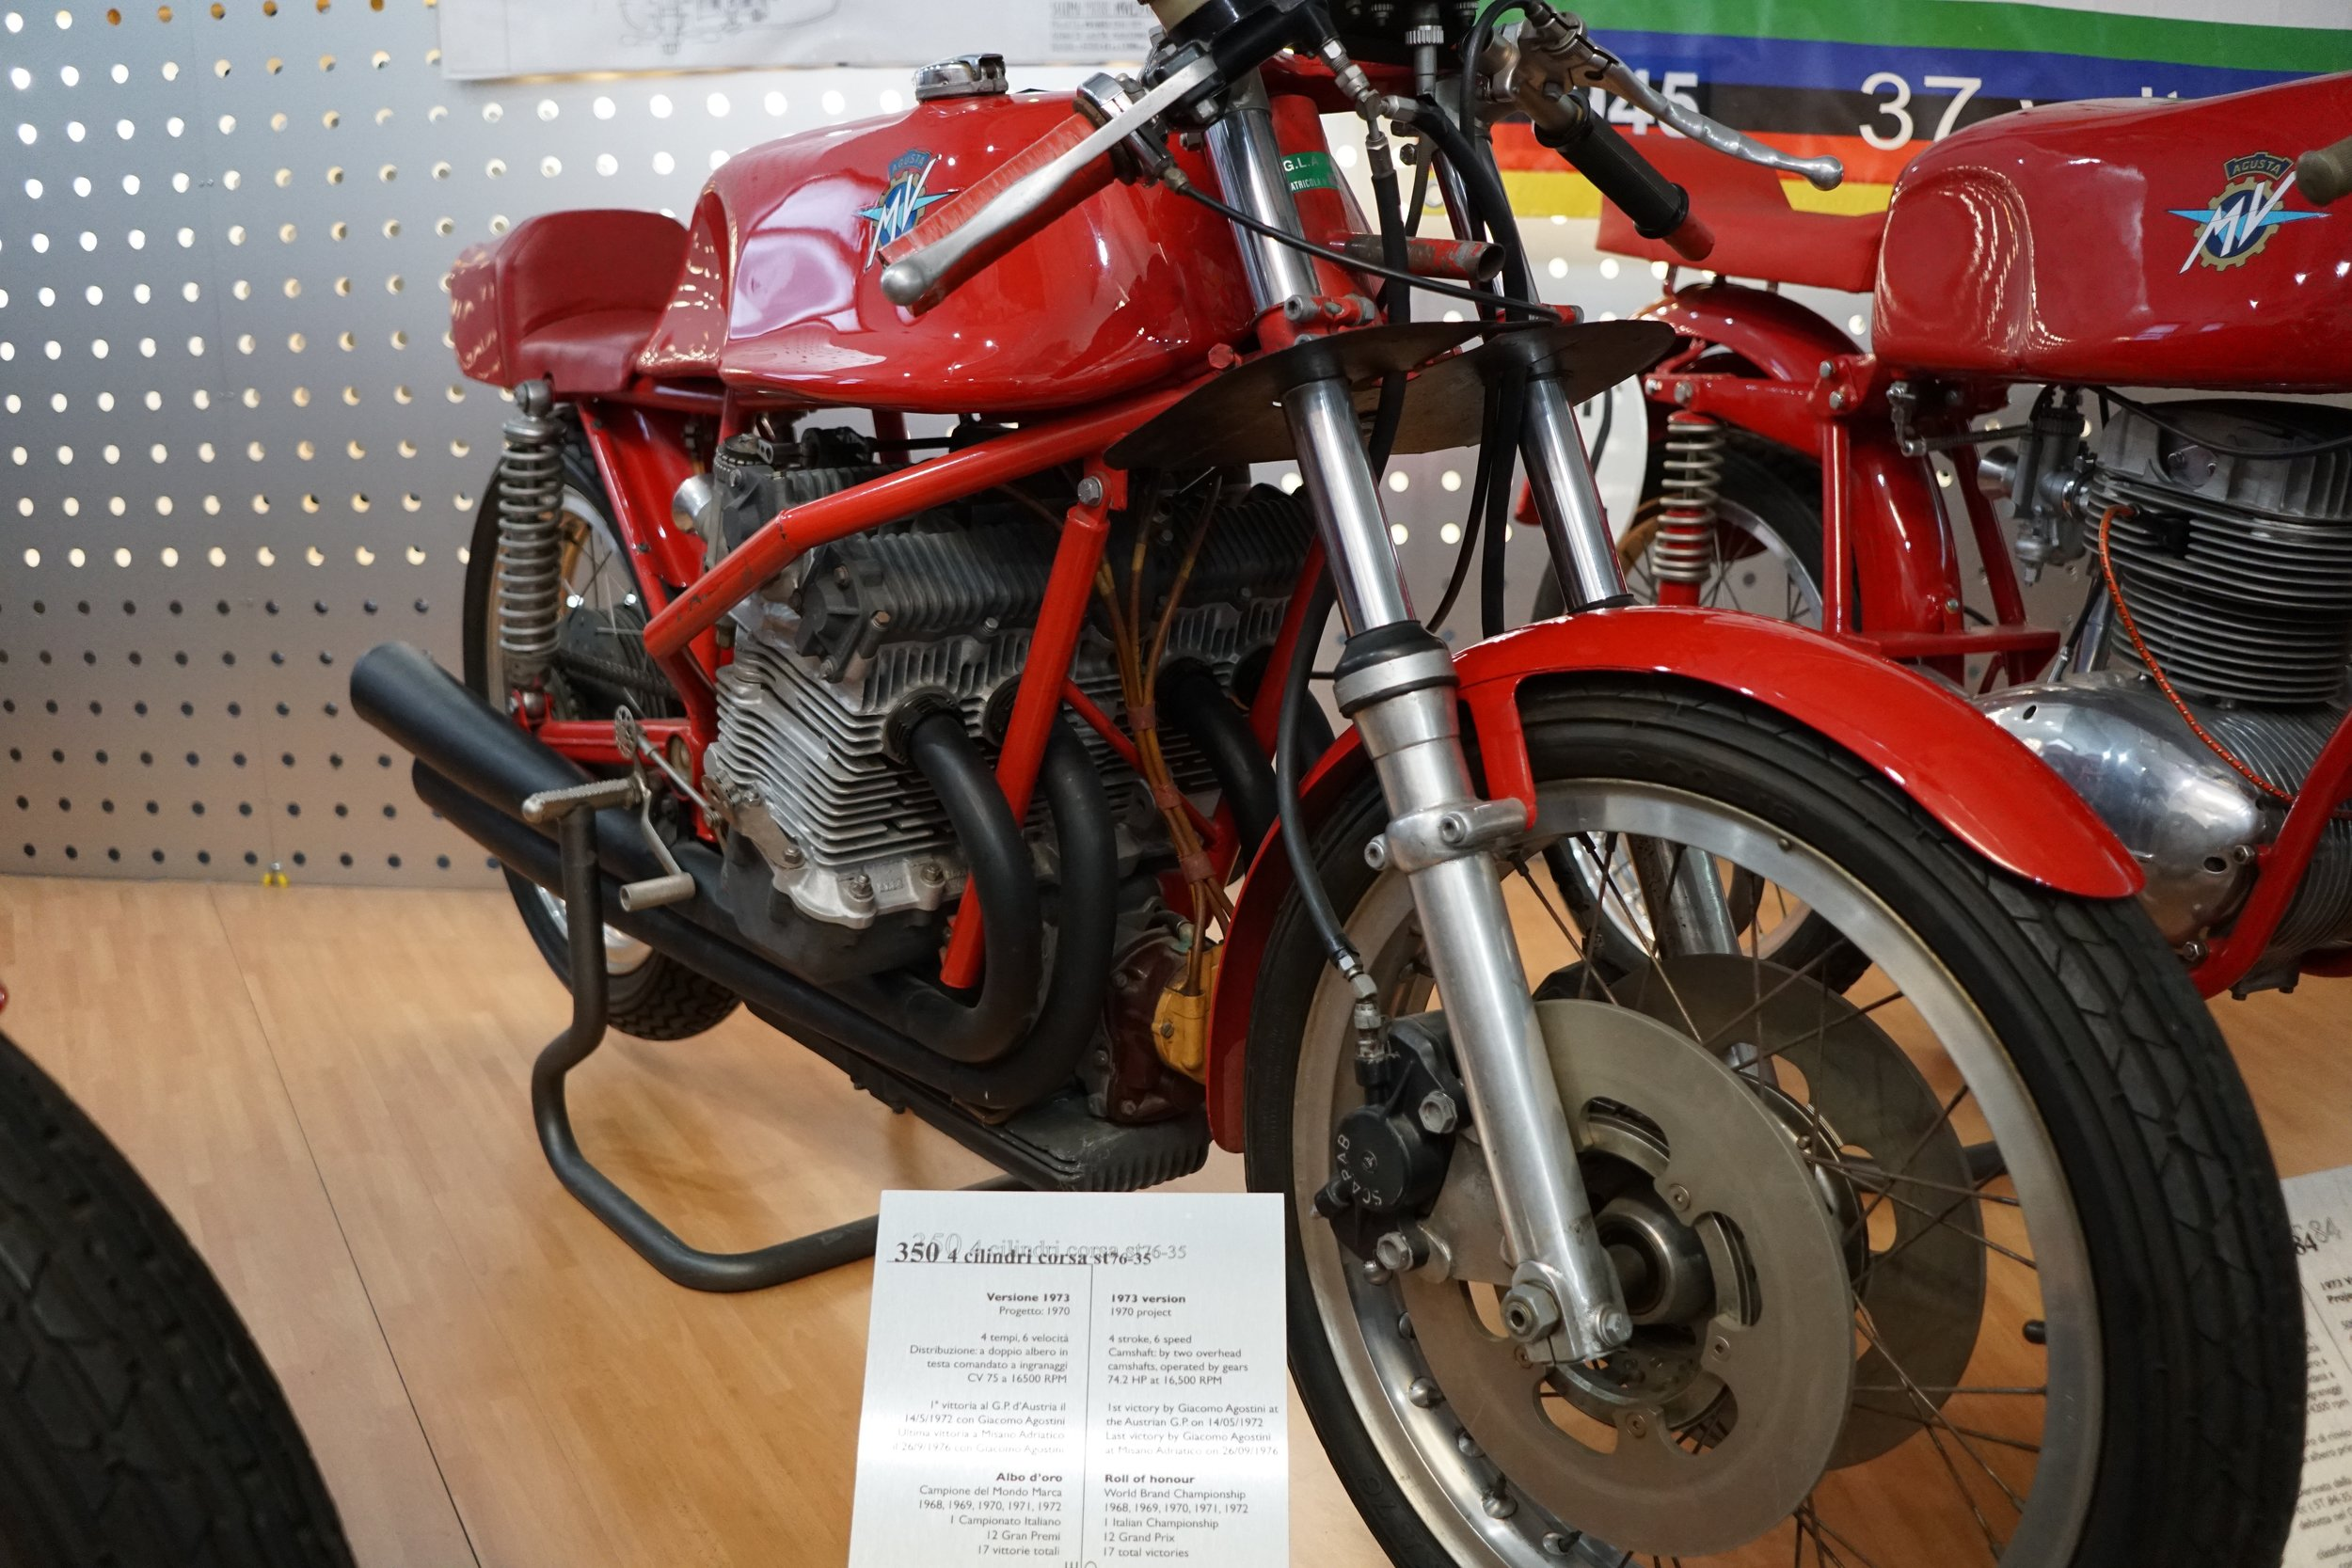 '73 350-4 ST76-35 – This 350cc four-cylinder machine is of the type raced by Giacomo Agostini from 1972-'76. DOHC, six-speeds, 74.2 hp @ 16,500 rpm. (Yes, over 200 hp/liter specific output; nearly the equal of a modern MotoGP bike!)